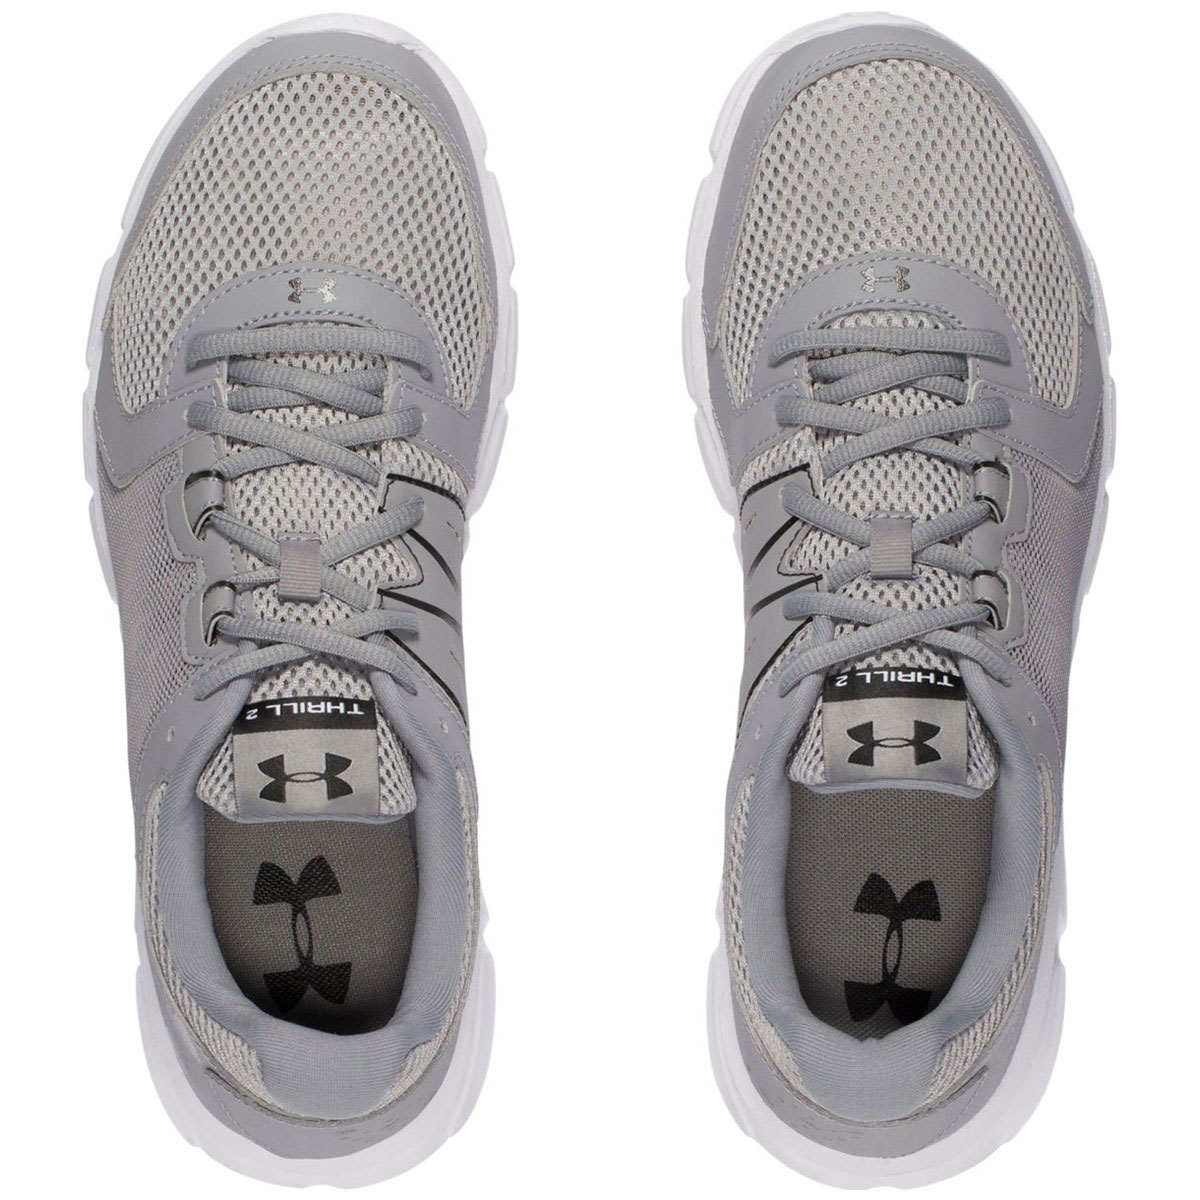 Under Armour Mens UA Thrill 2 Running Trainers Gym Sports Training ... 82d8c33cf37